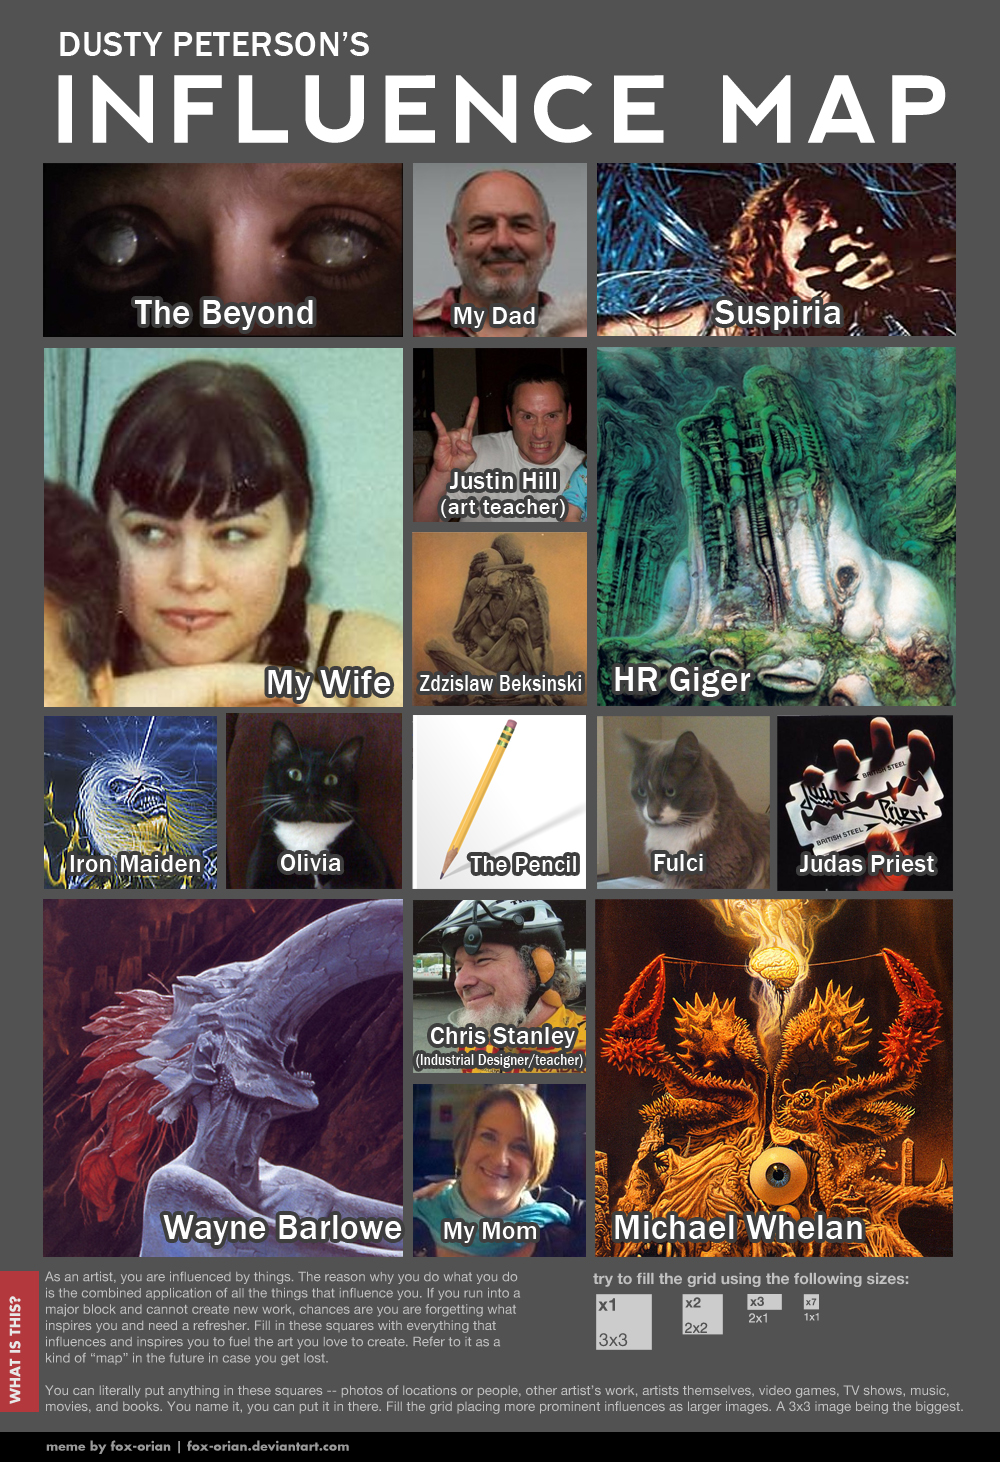 DA's Influence Map meme